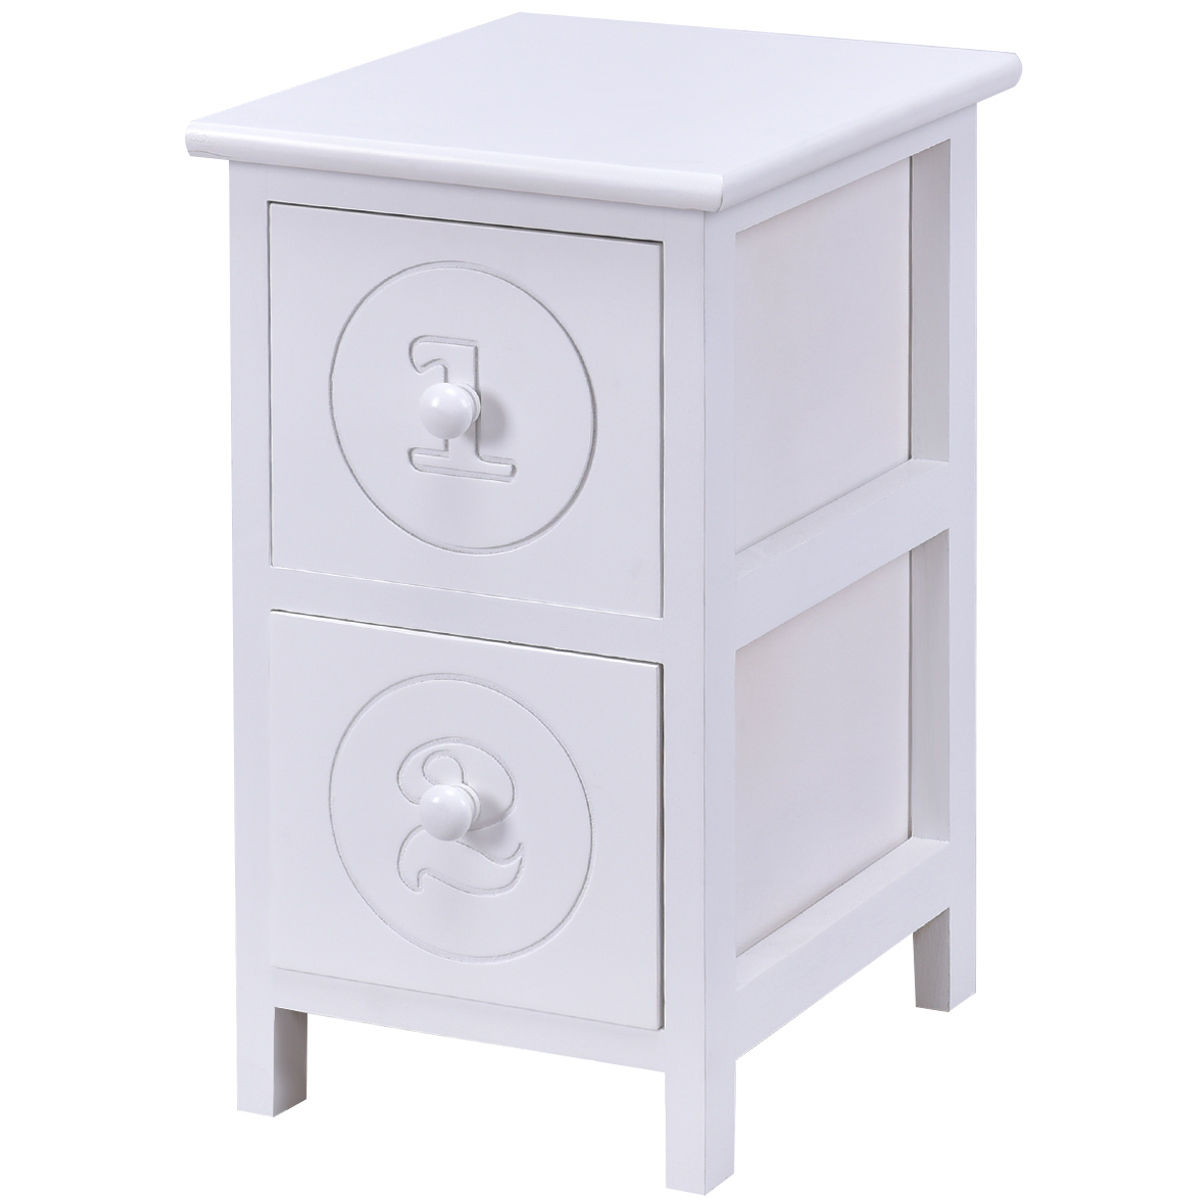 Costway White Wooden Bedside Table Nightstand Cabinet Furniture Storage Drawers  sc 1 st  Walmart & Costway White Wooden Bedside Table Nightstand Cabinet Furniture ...